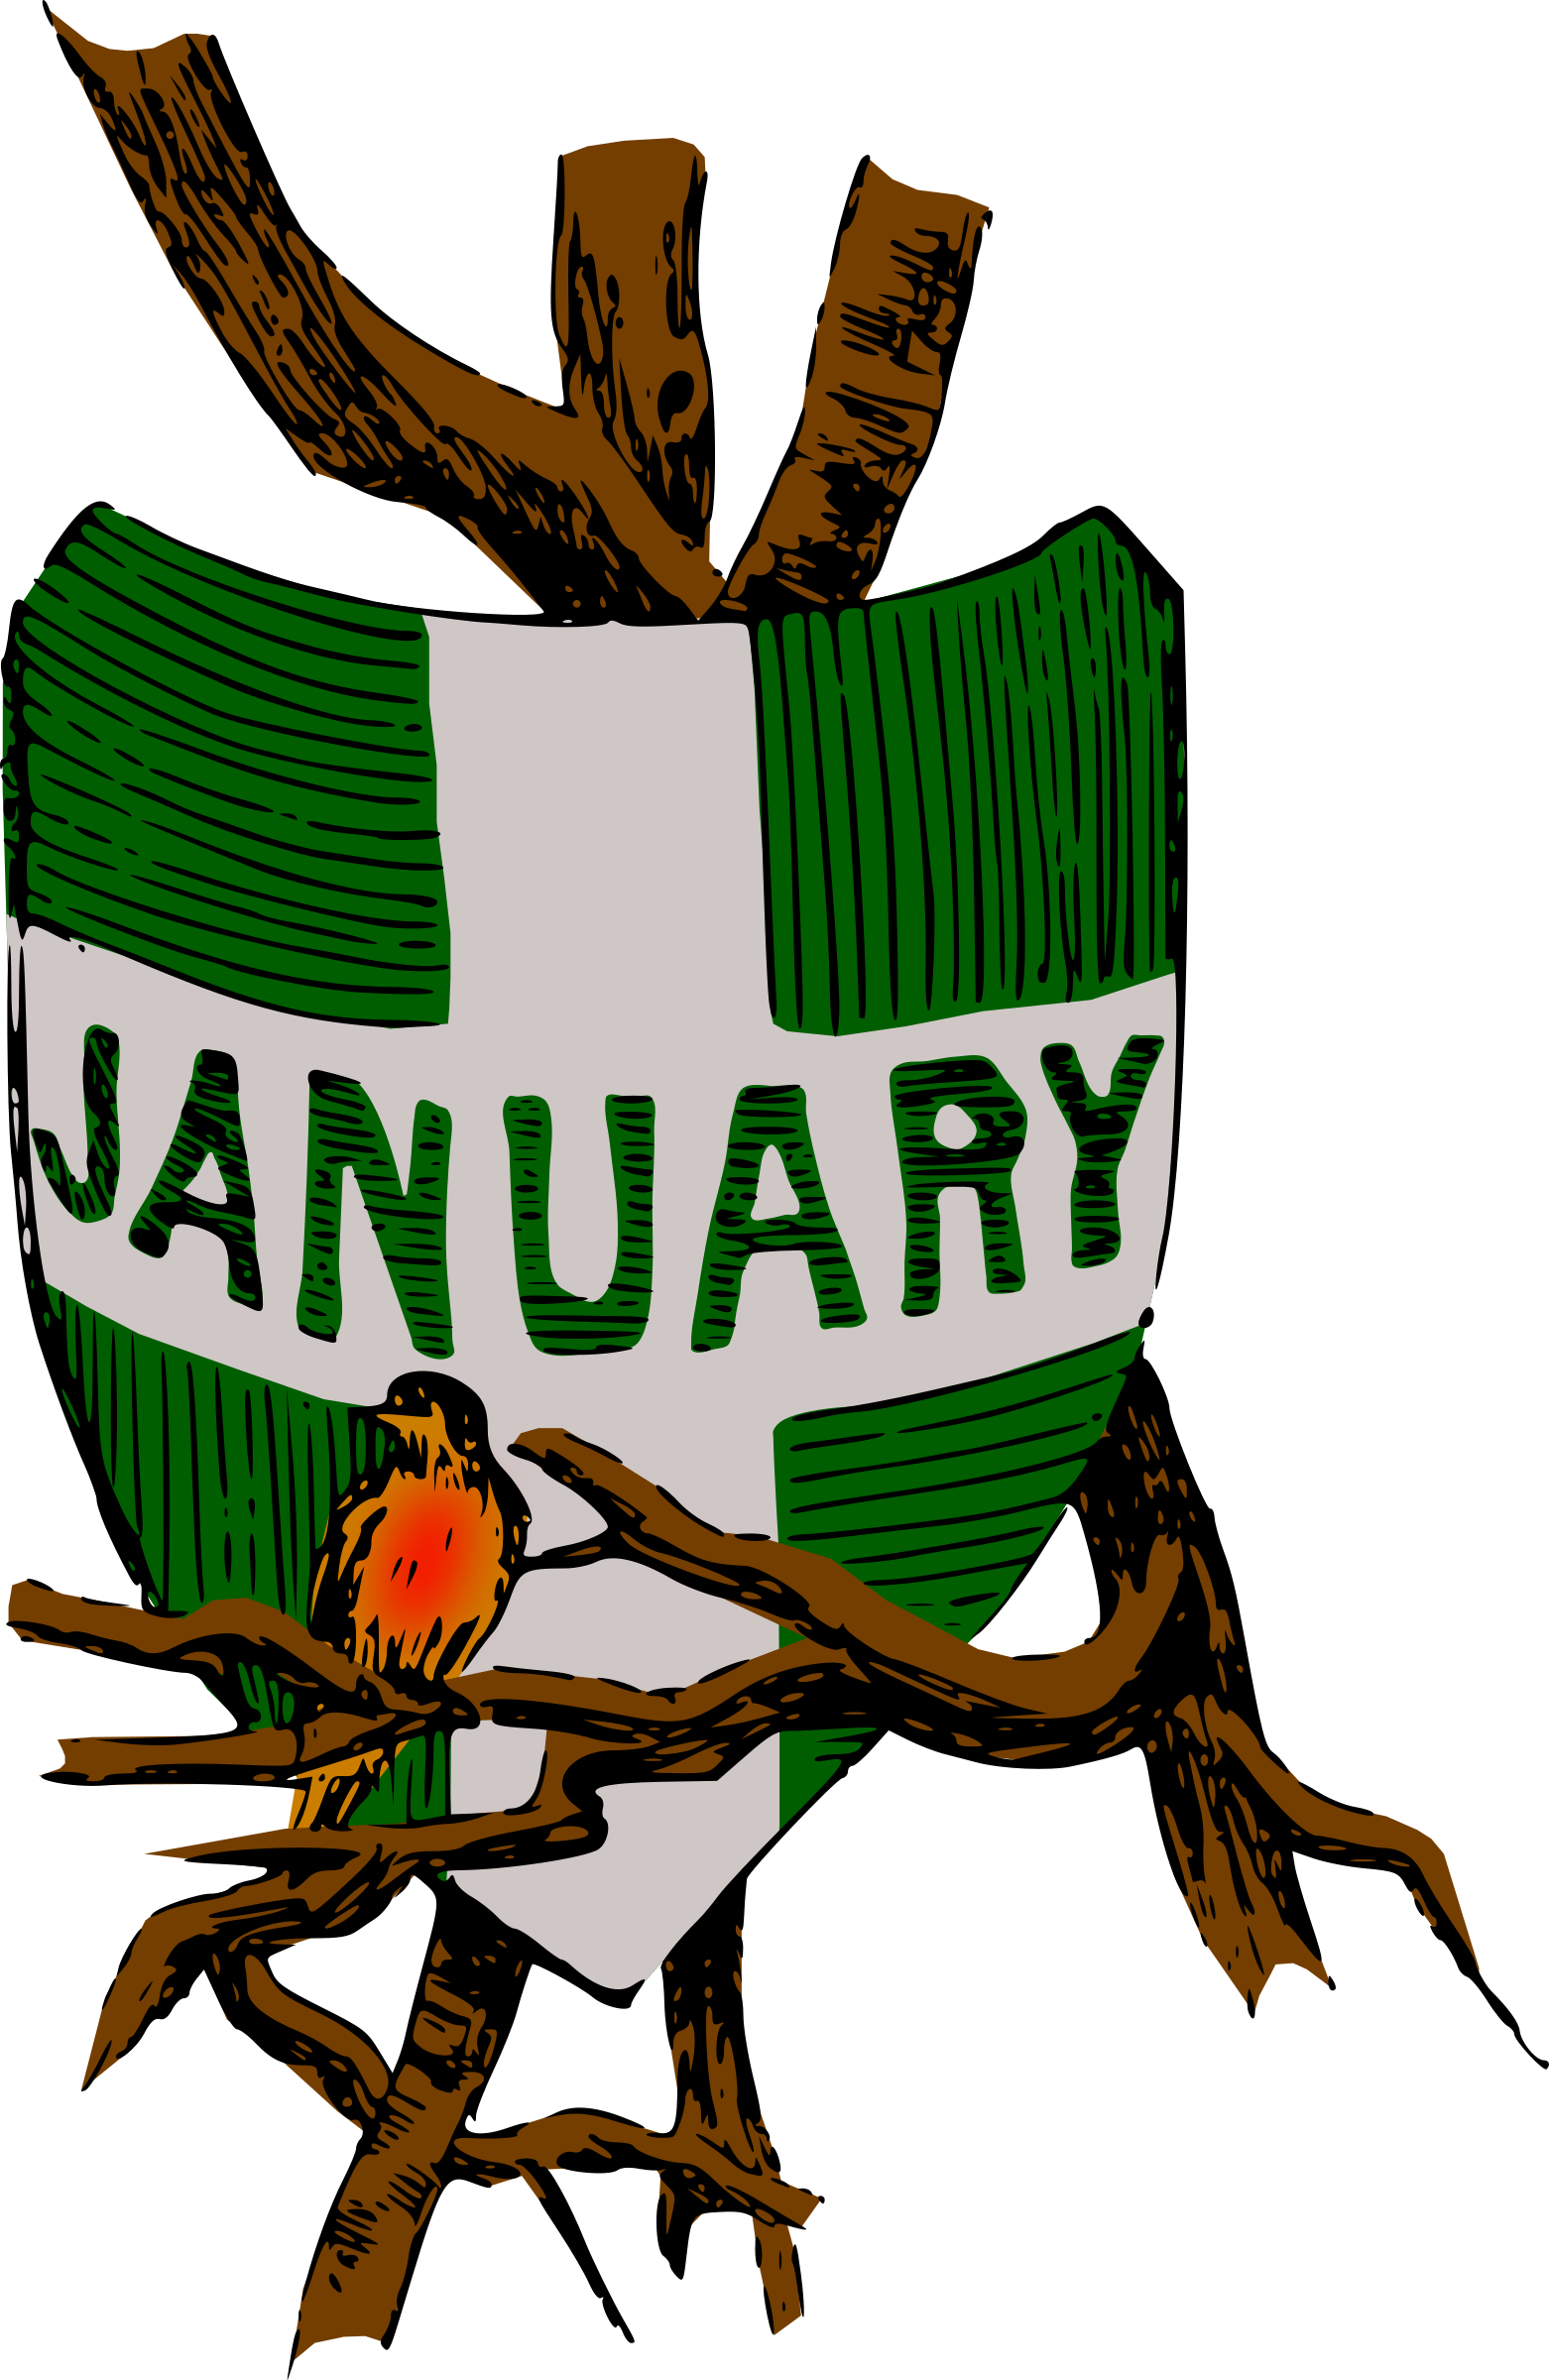 Month of january clipart jpg free download Clipart - Illustrated months (January, colour) jpg free download